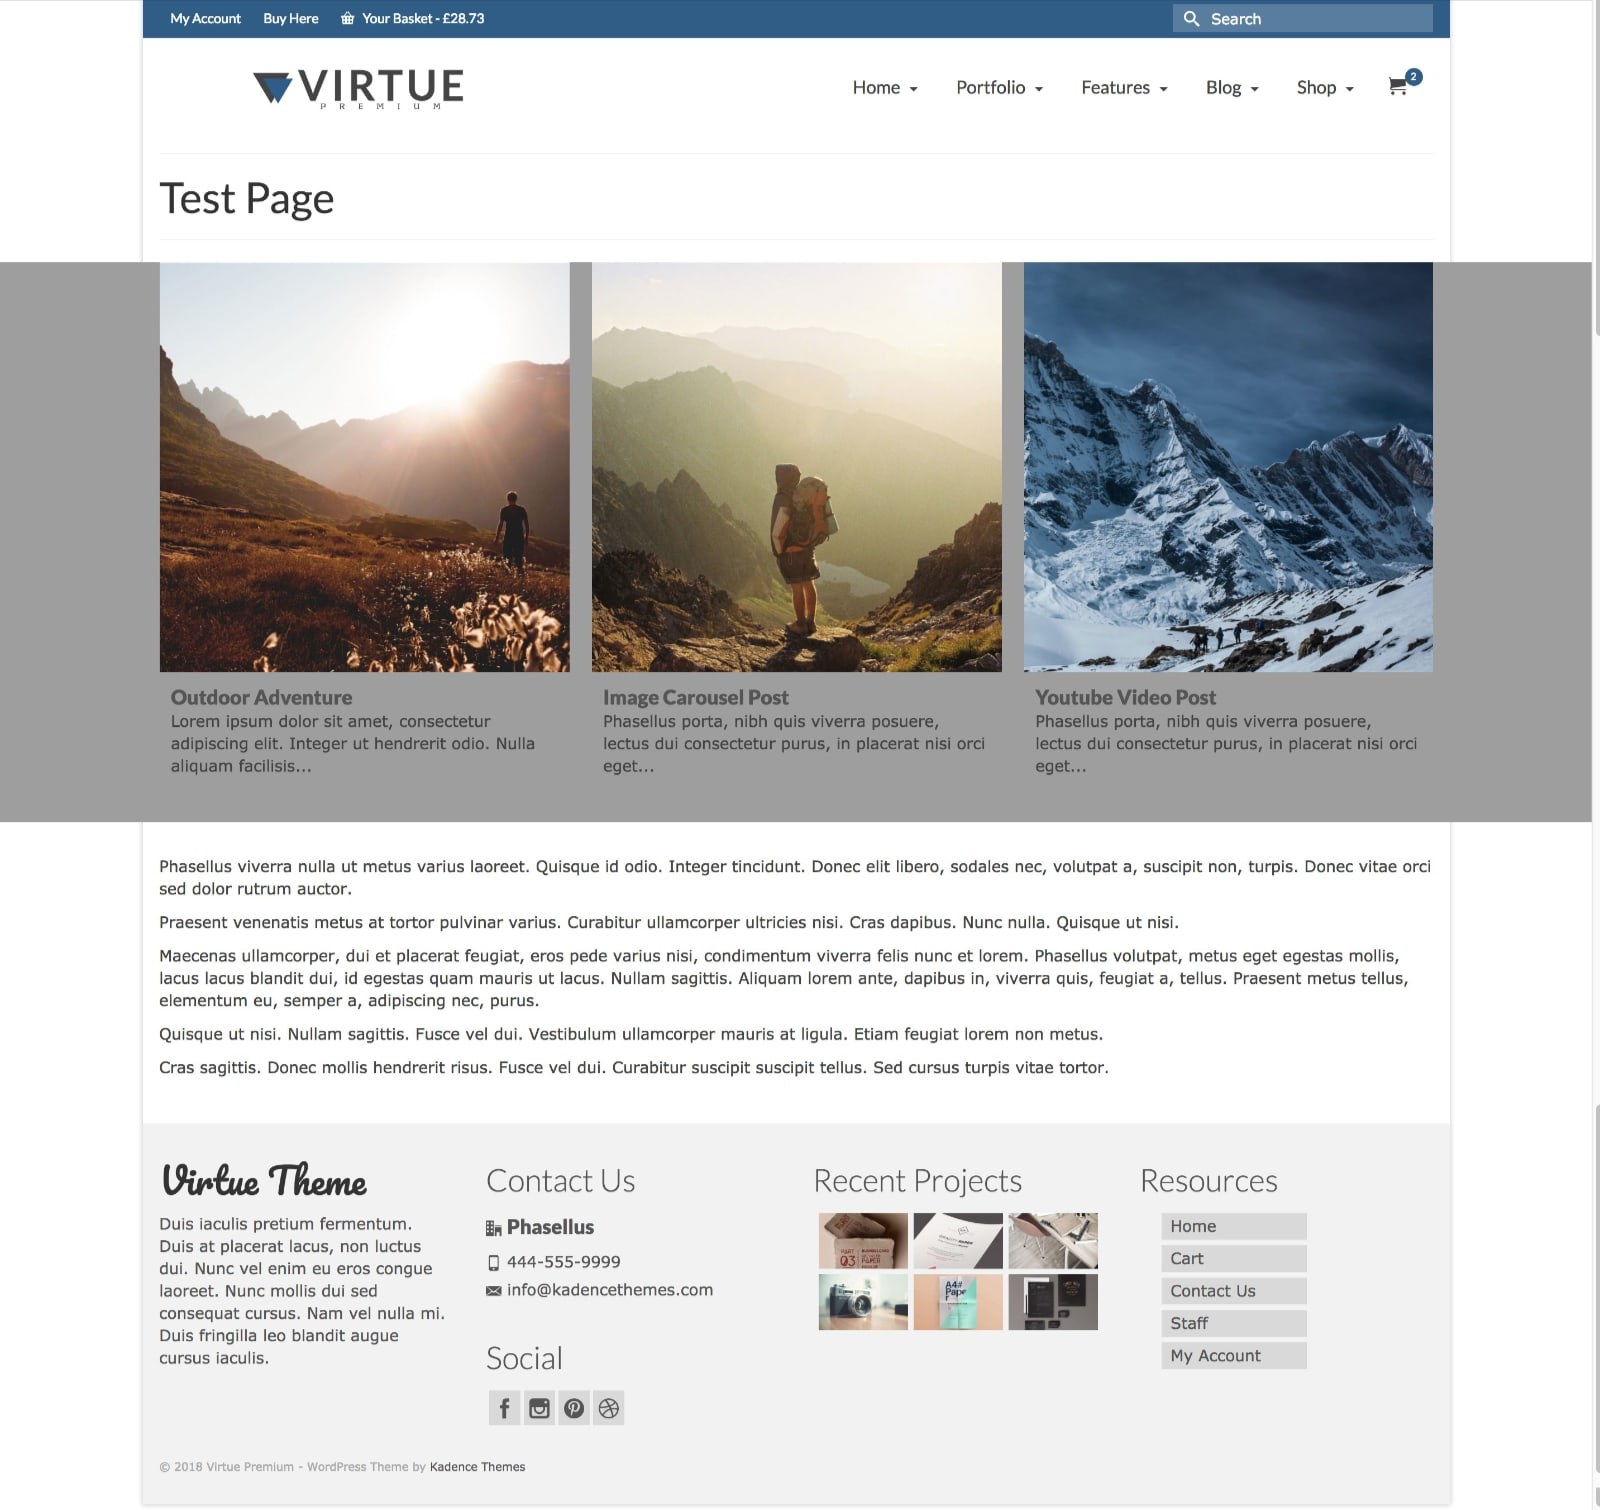 page-builder-fullwidth-container-body-kadence-themes